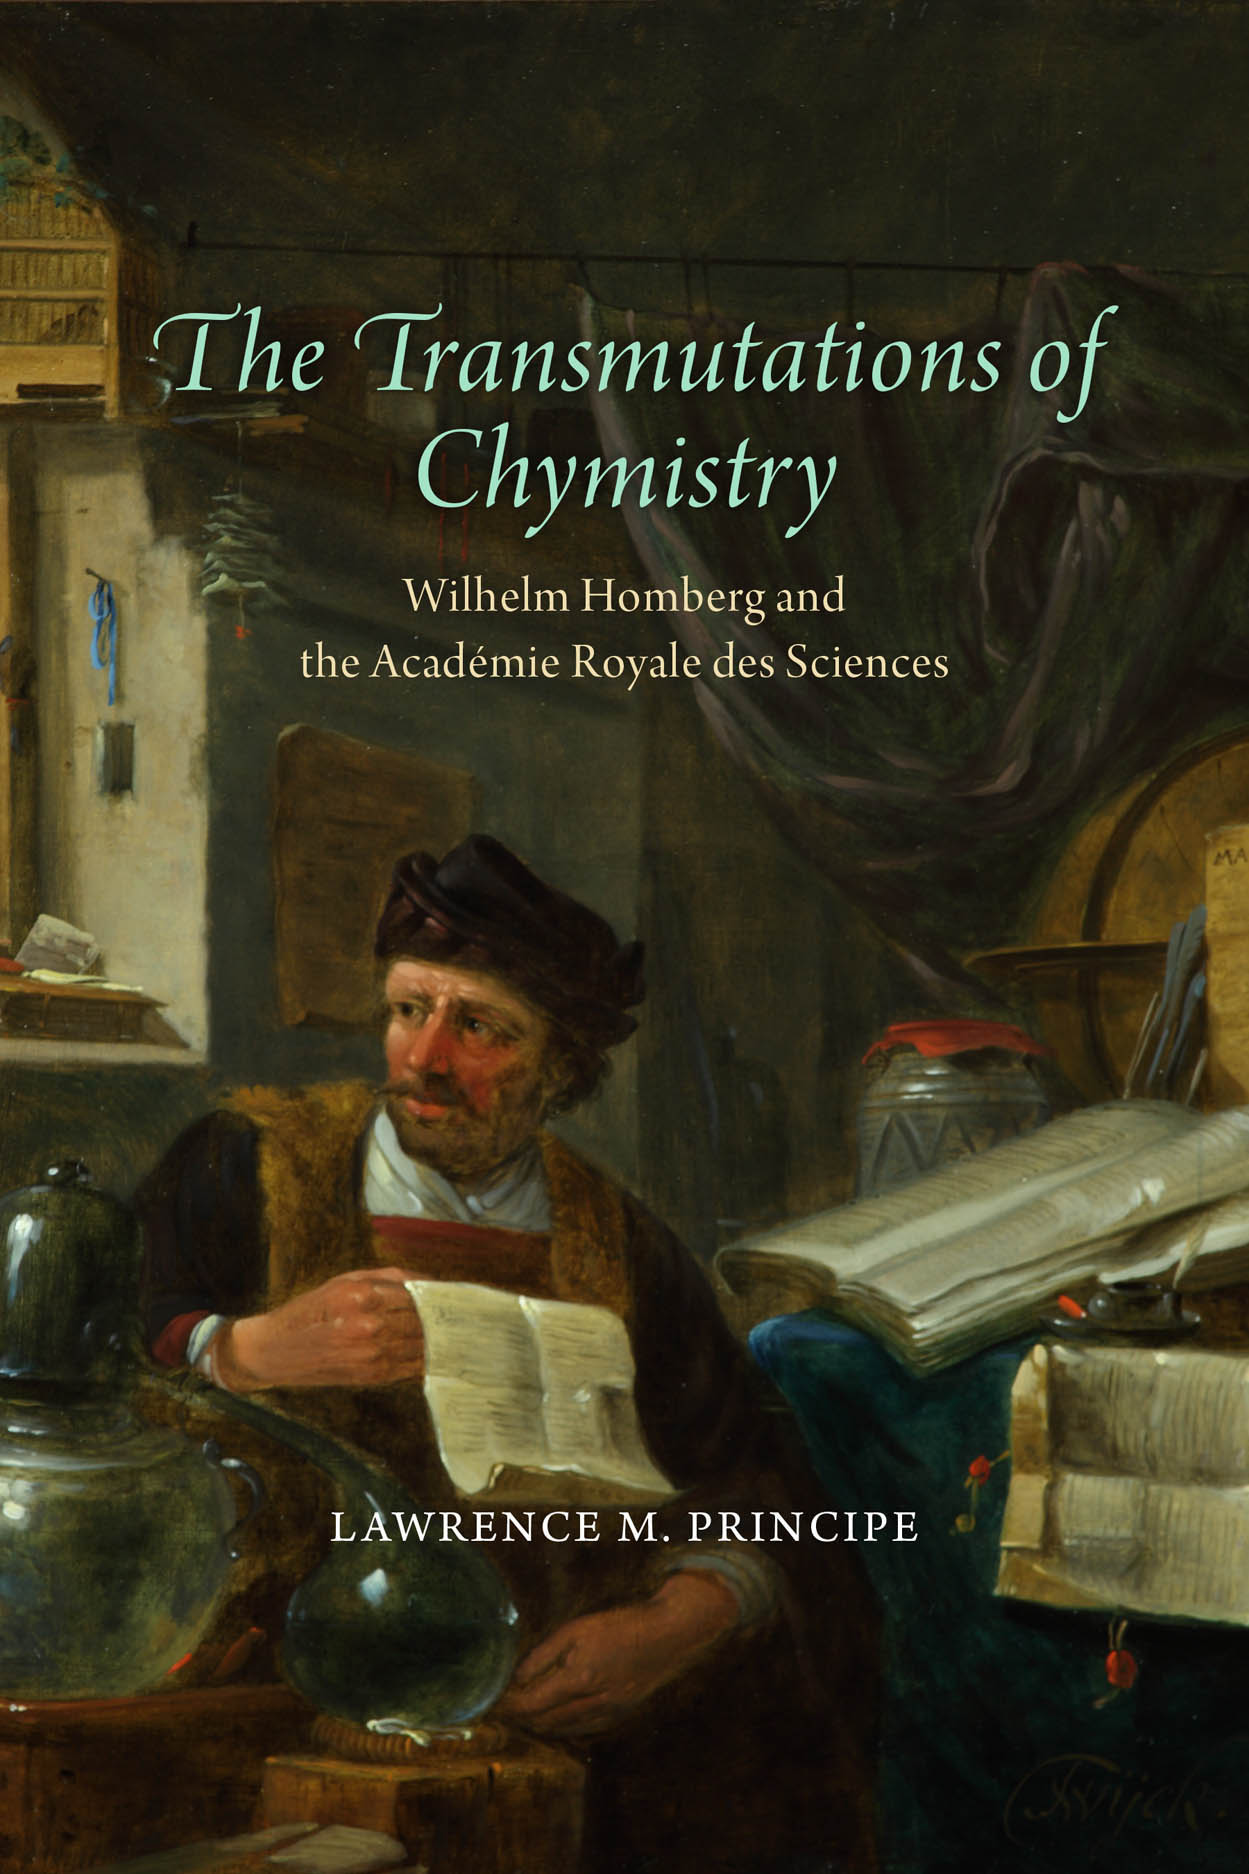 The Transmutations of Chymistry